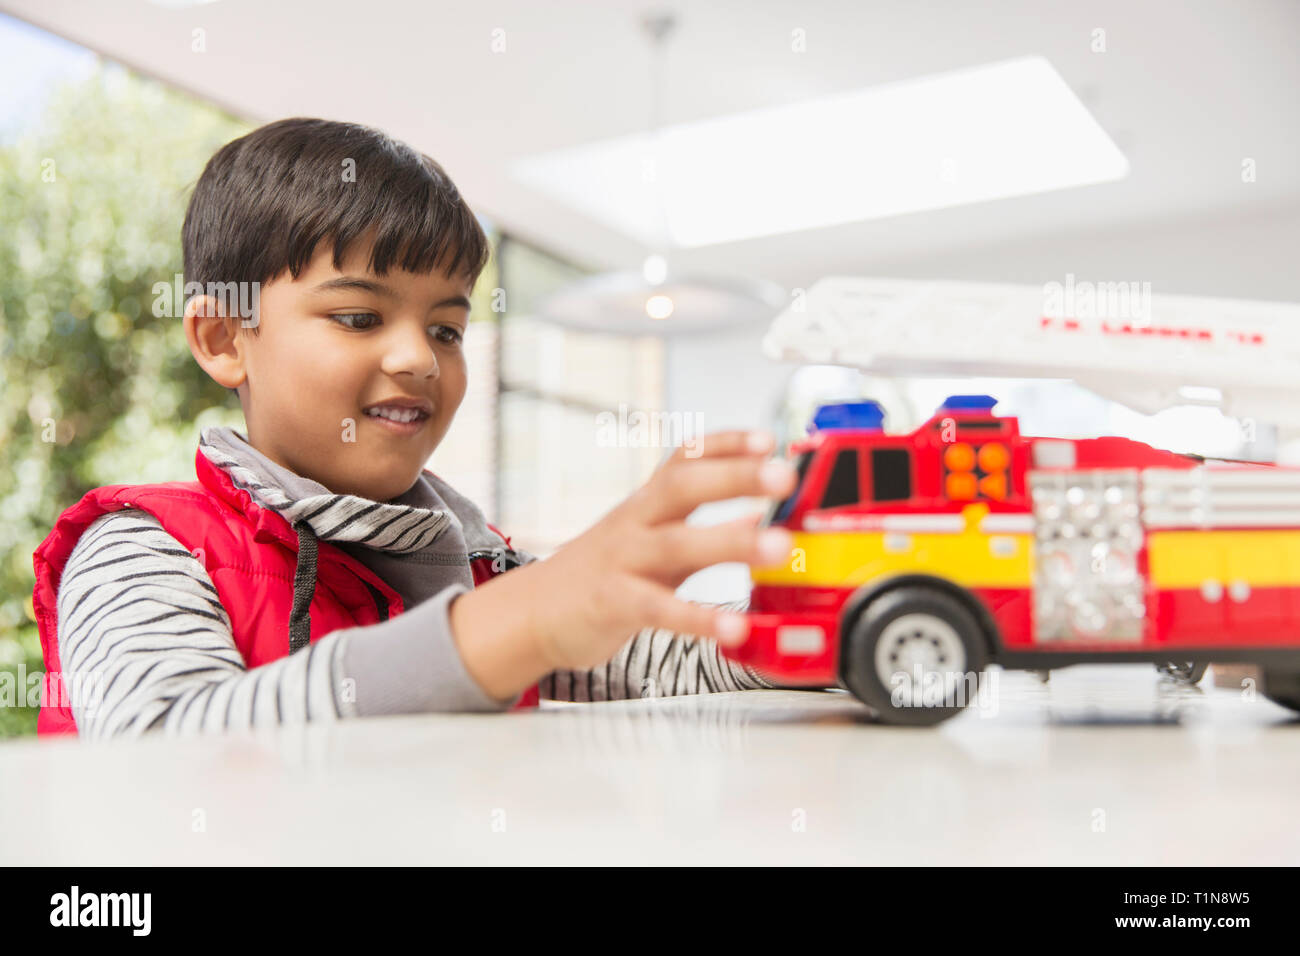 Boy playing with fire engine toy - Stock Image